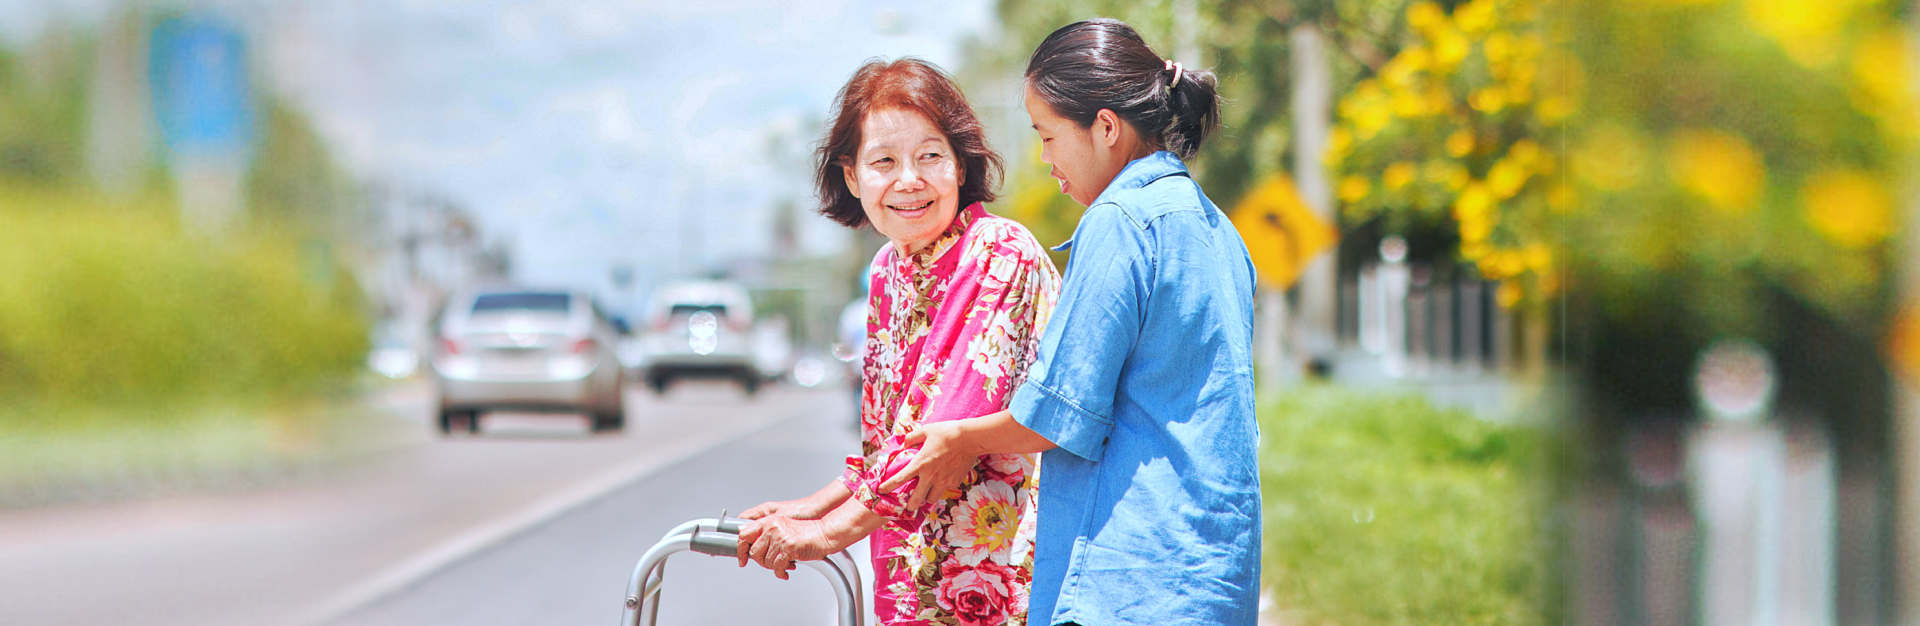 caregiver assisting senior woman in crossing the street